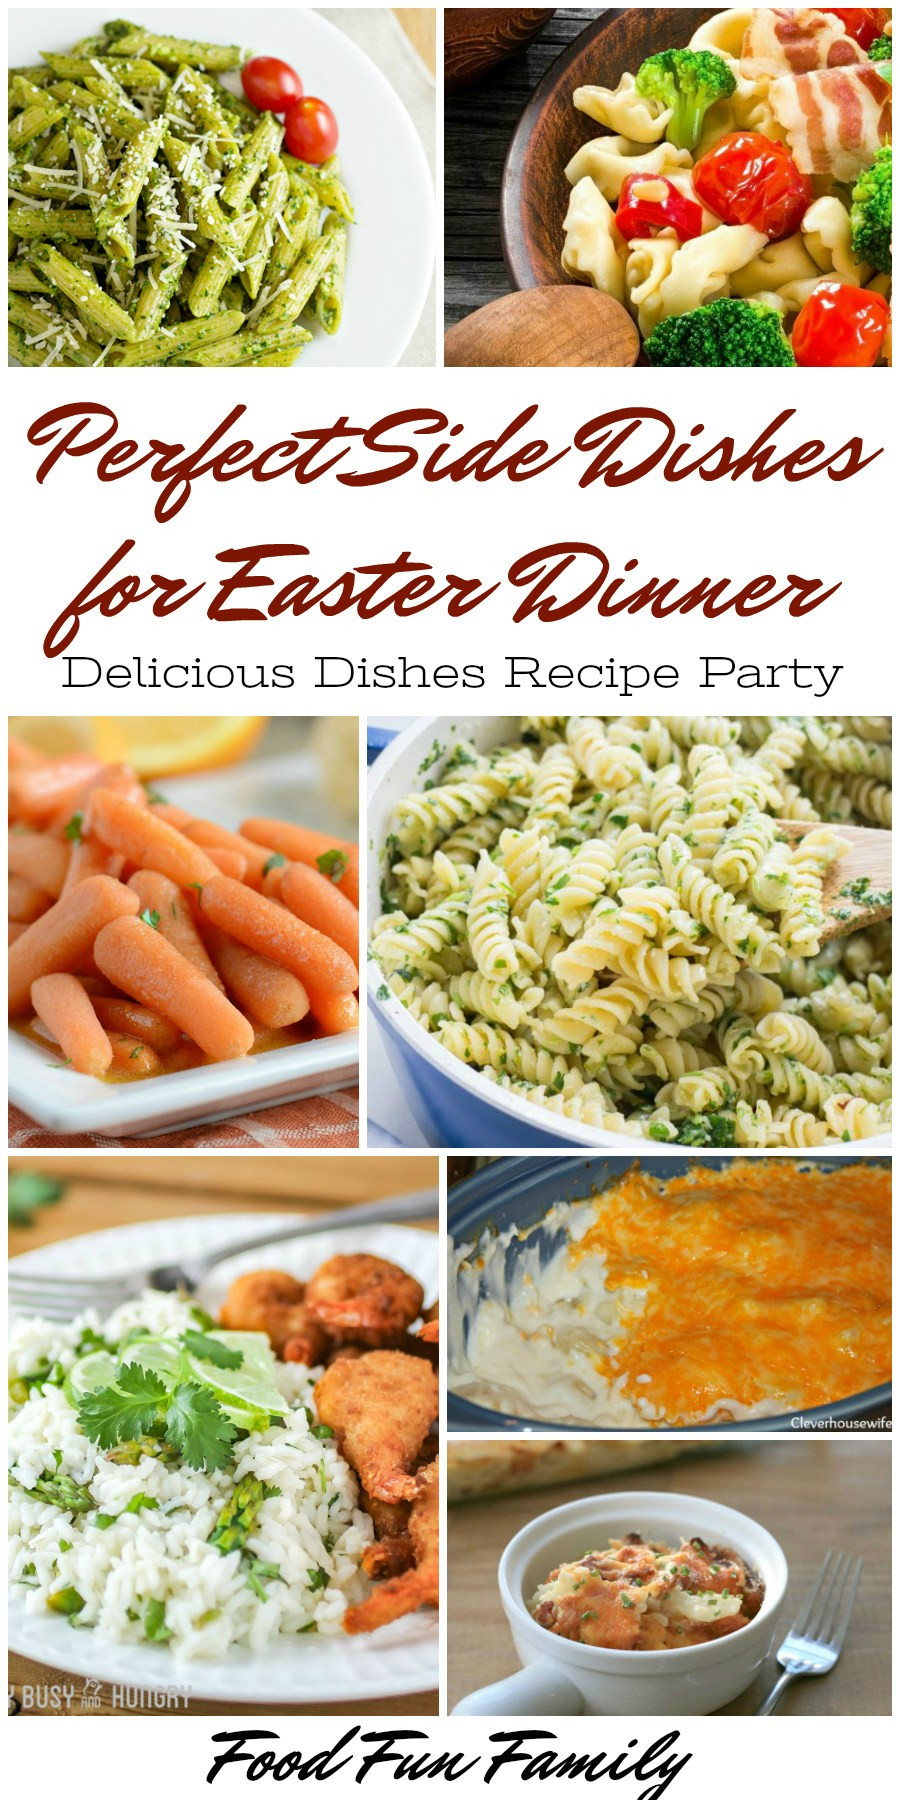 Easter Side Dishes Pinterest  Perfect Side Dishes for Easter Dinner – Delicious Dishes